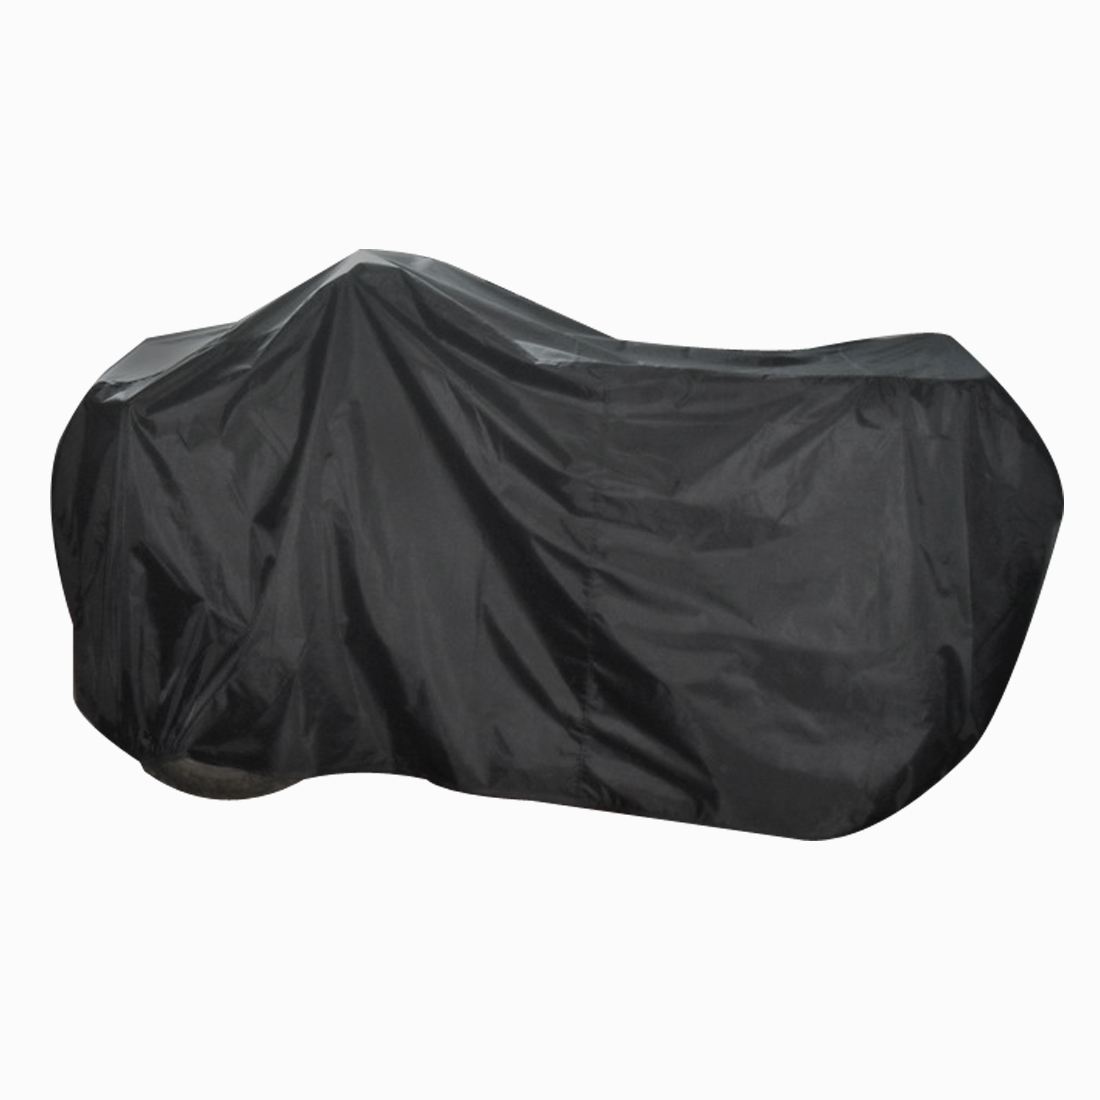 Waterproof Weather Dust Resistant Quad Bike ATV Cover Black 220cm Long